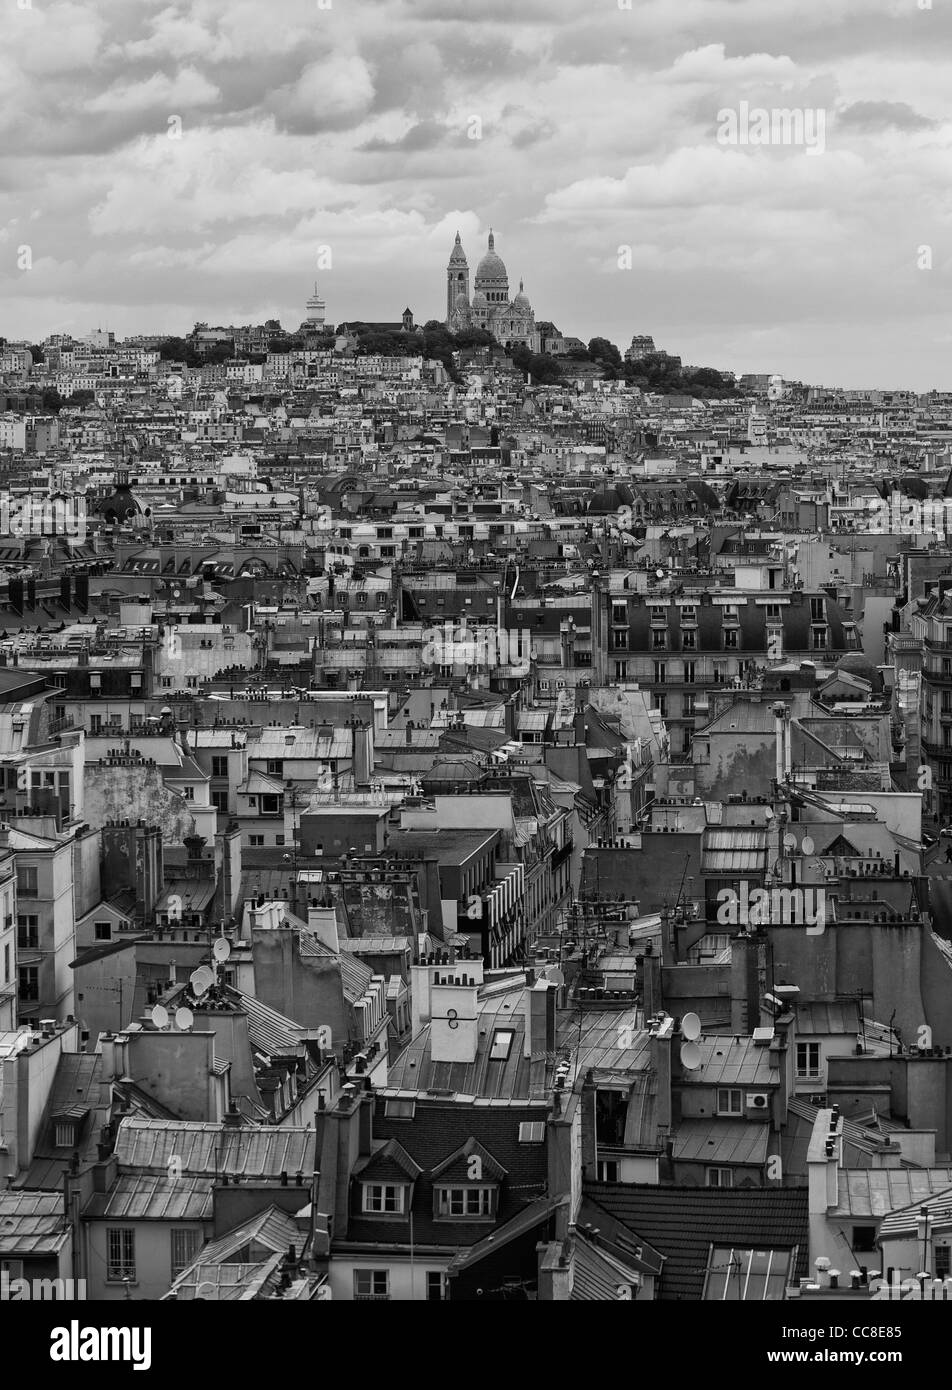 View of Montmartre and the Basilica of the Sacre Coeur in black and white - Stock Image